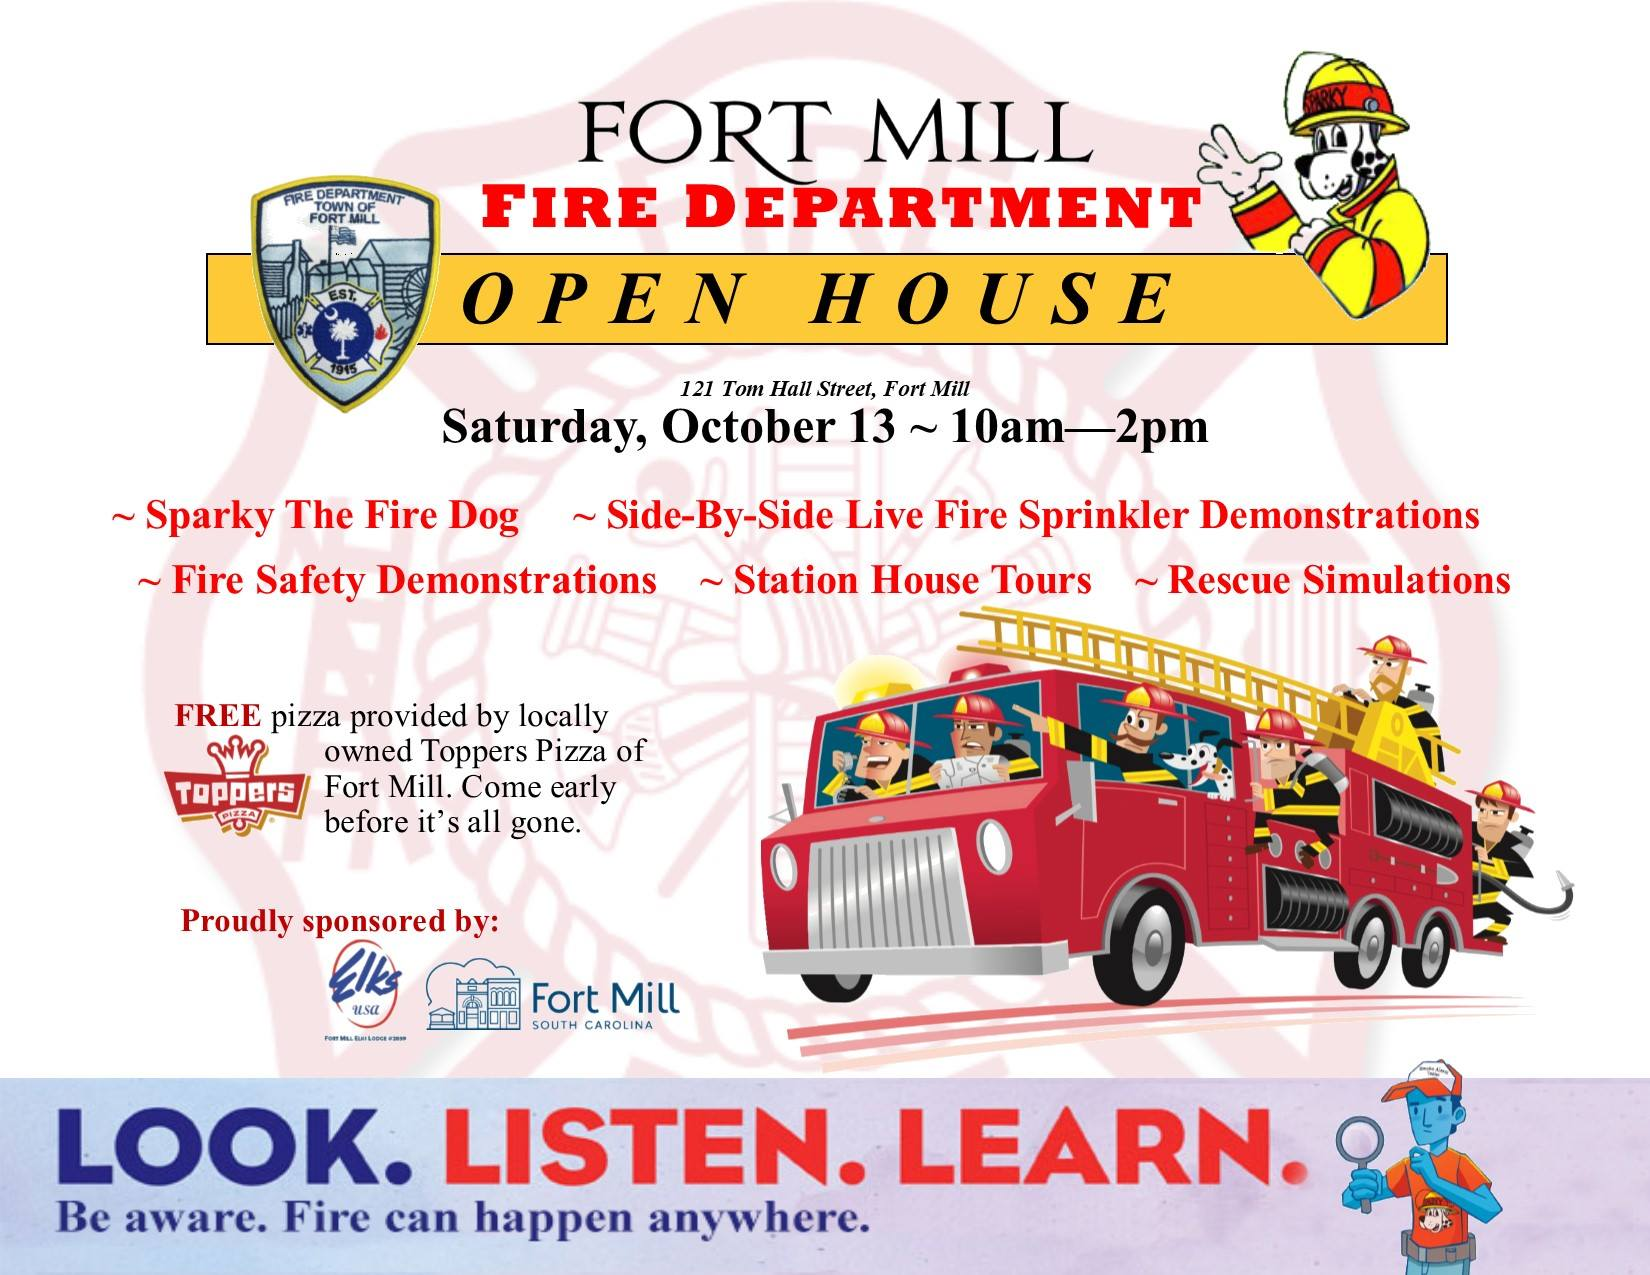 Fort Mill Fire Department Open House